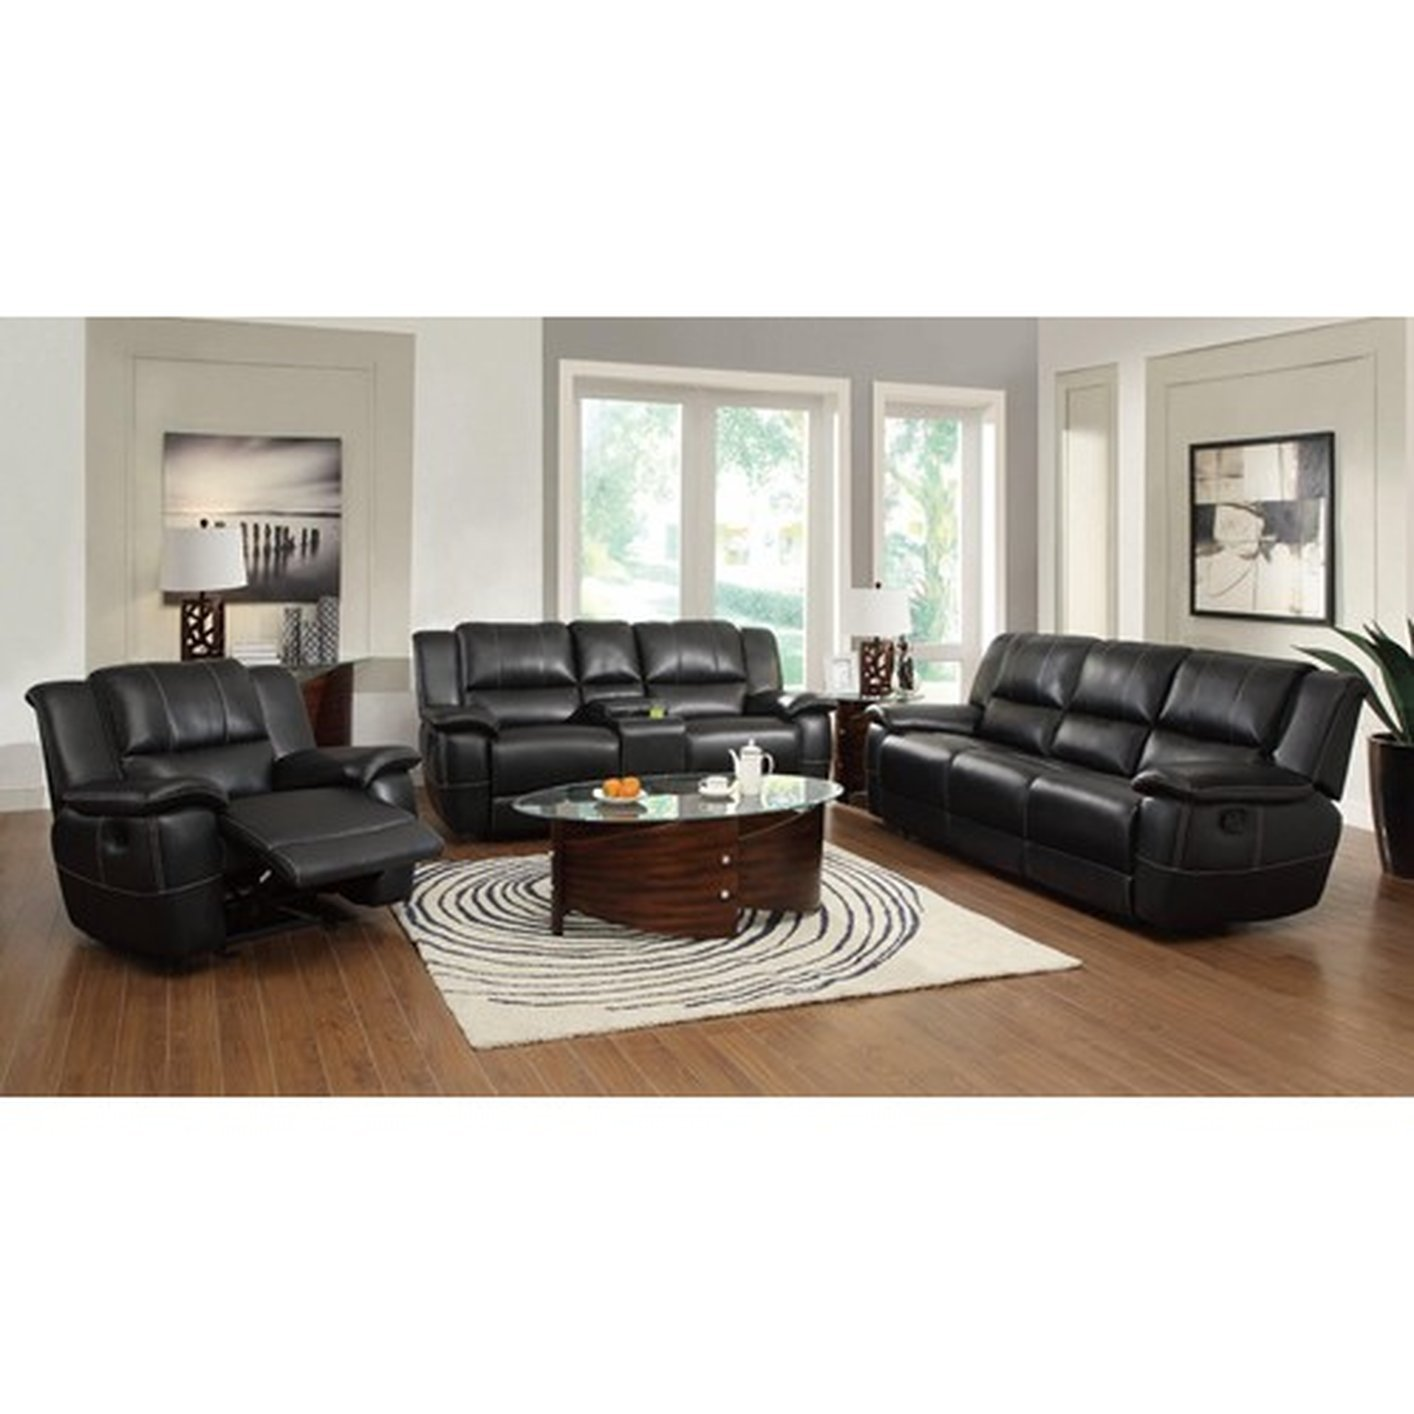 Coaster 601062 Black Leather Reclining Loveseat Steal A Sofa Furniture Outlet Los Angeles Ca